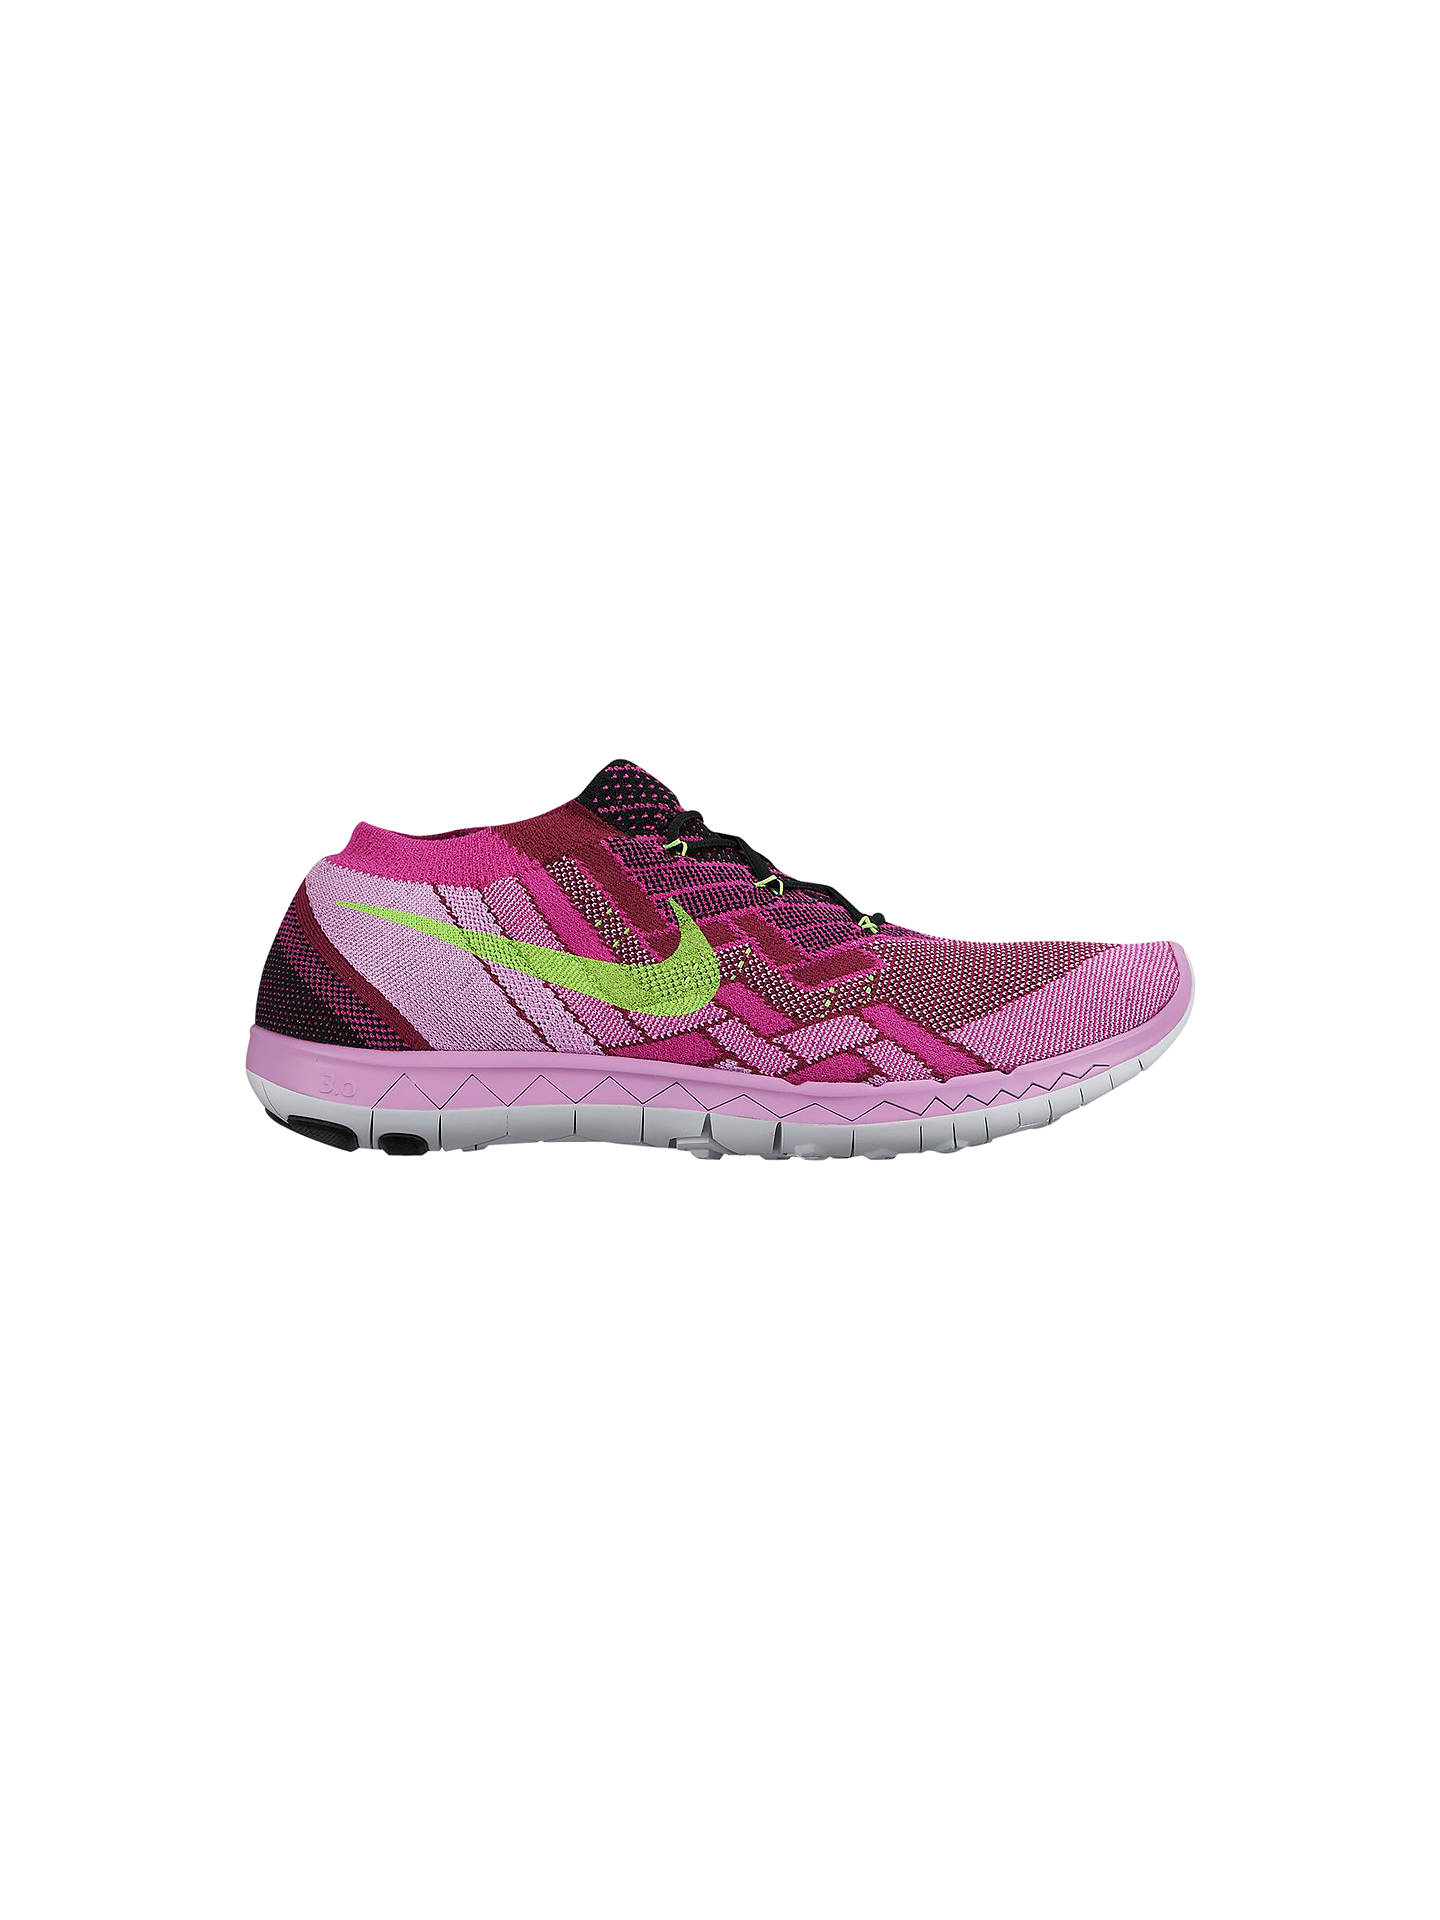 fefa0cb0d Nike Free 3.0 Flyknit Women's Running Shoe at John Lewis & Partners